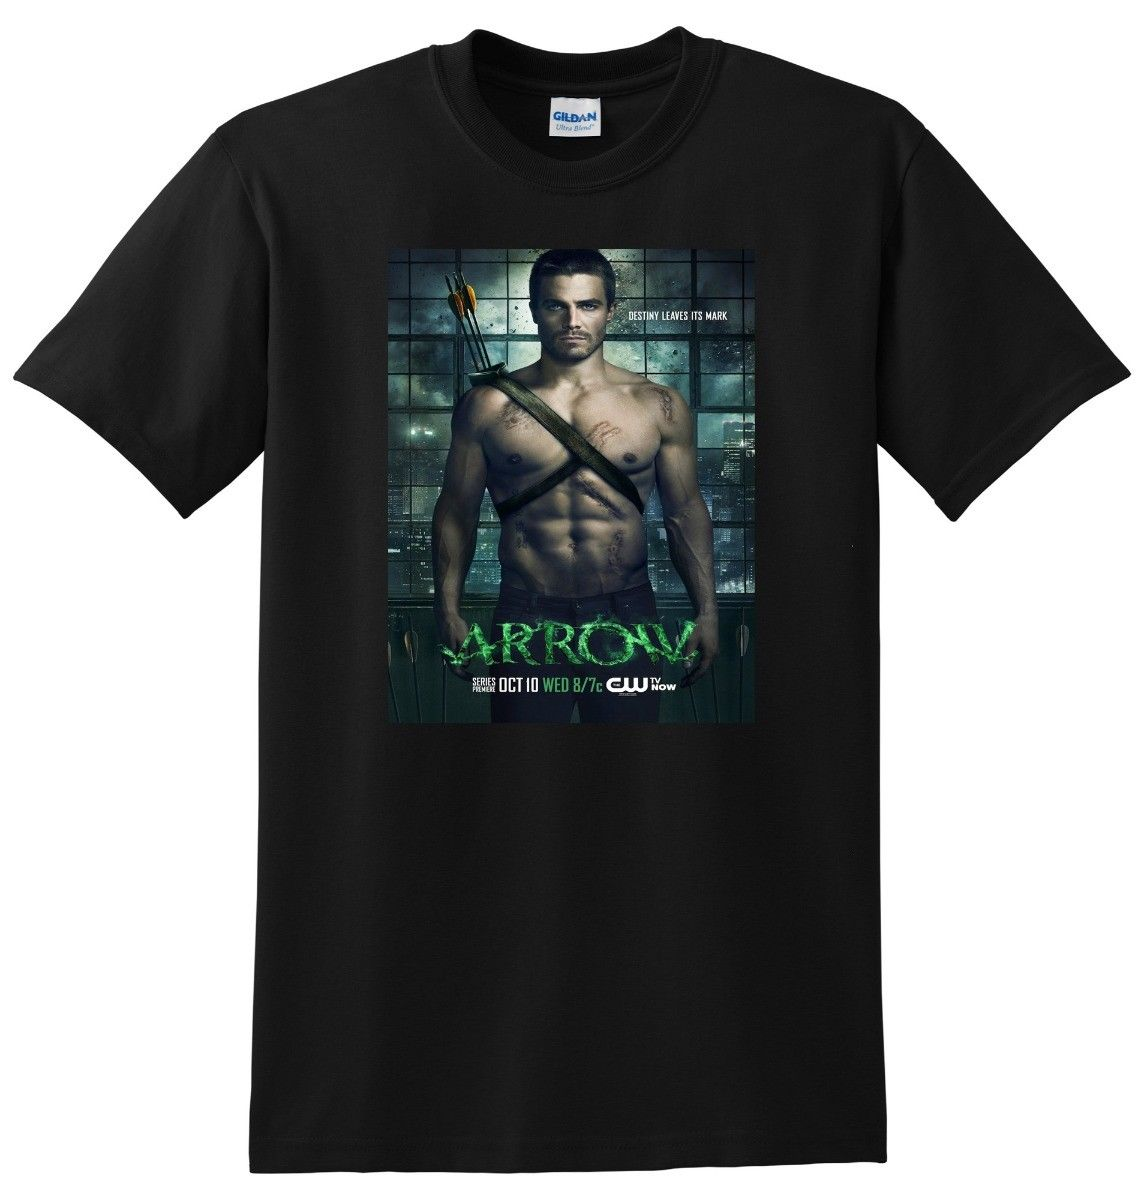 *NEW* ARROW T SHIRT Tv Show Season 1 2 3 Summer Tops Tees T-